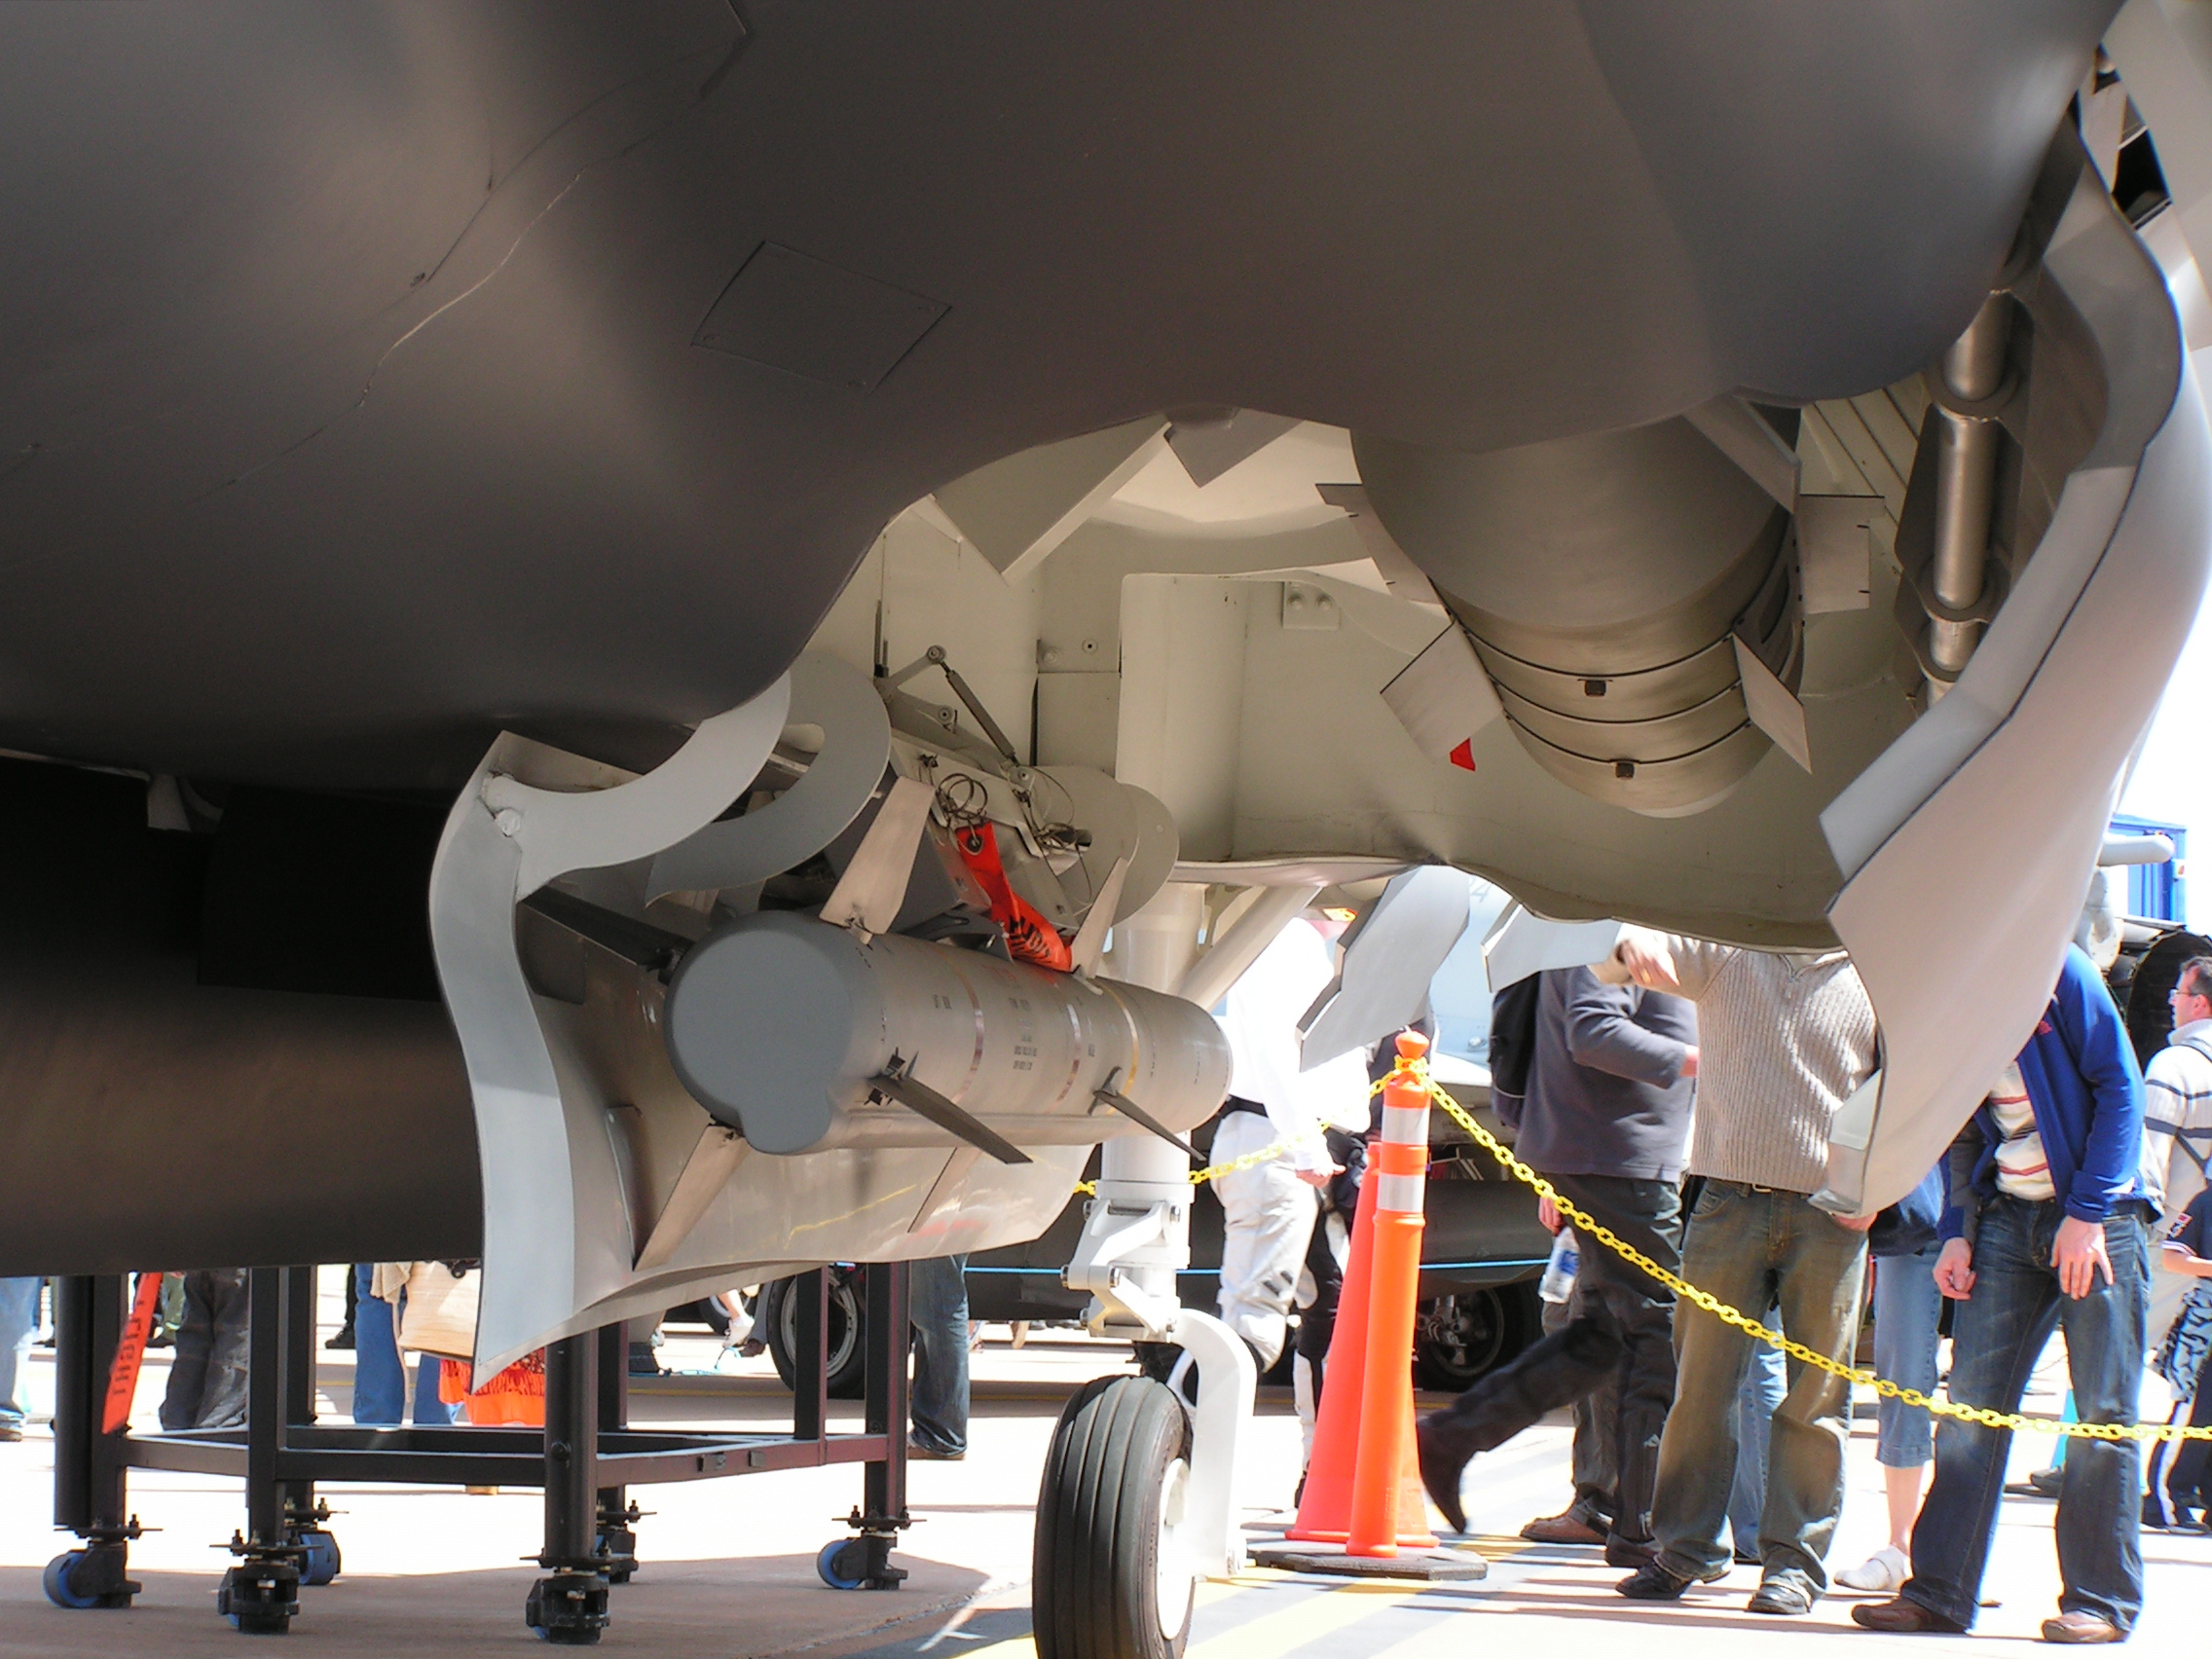 Close-up view of open aircraft weapons bay. The aircraft mock-up itself is on display, watched on by onlookers